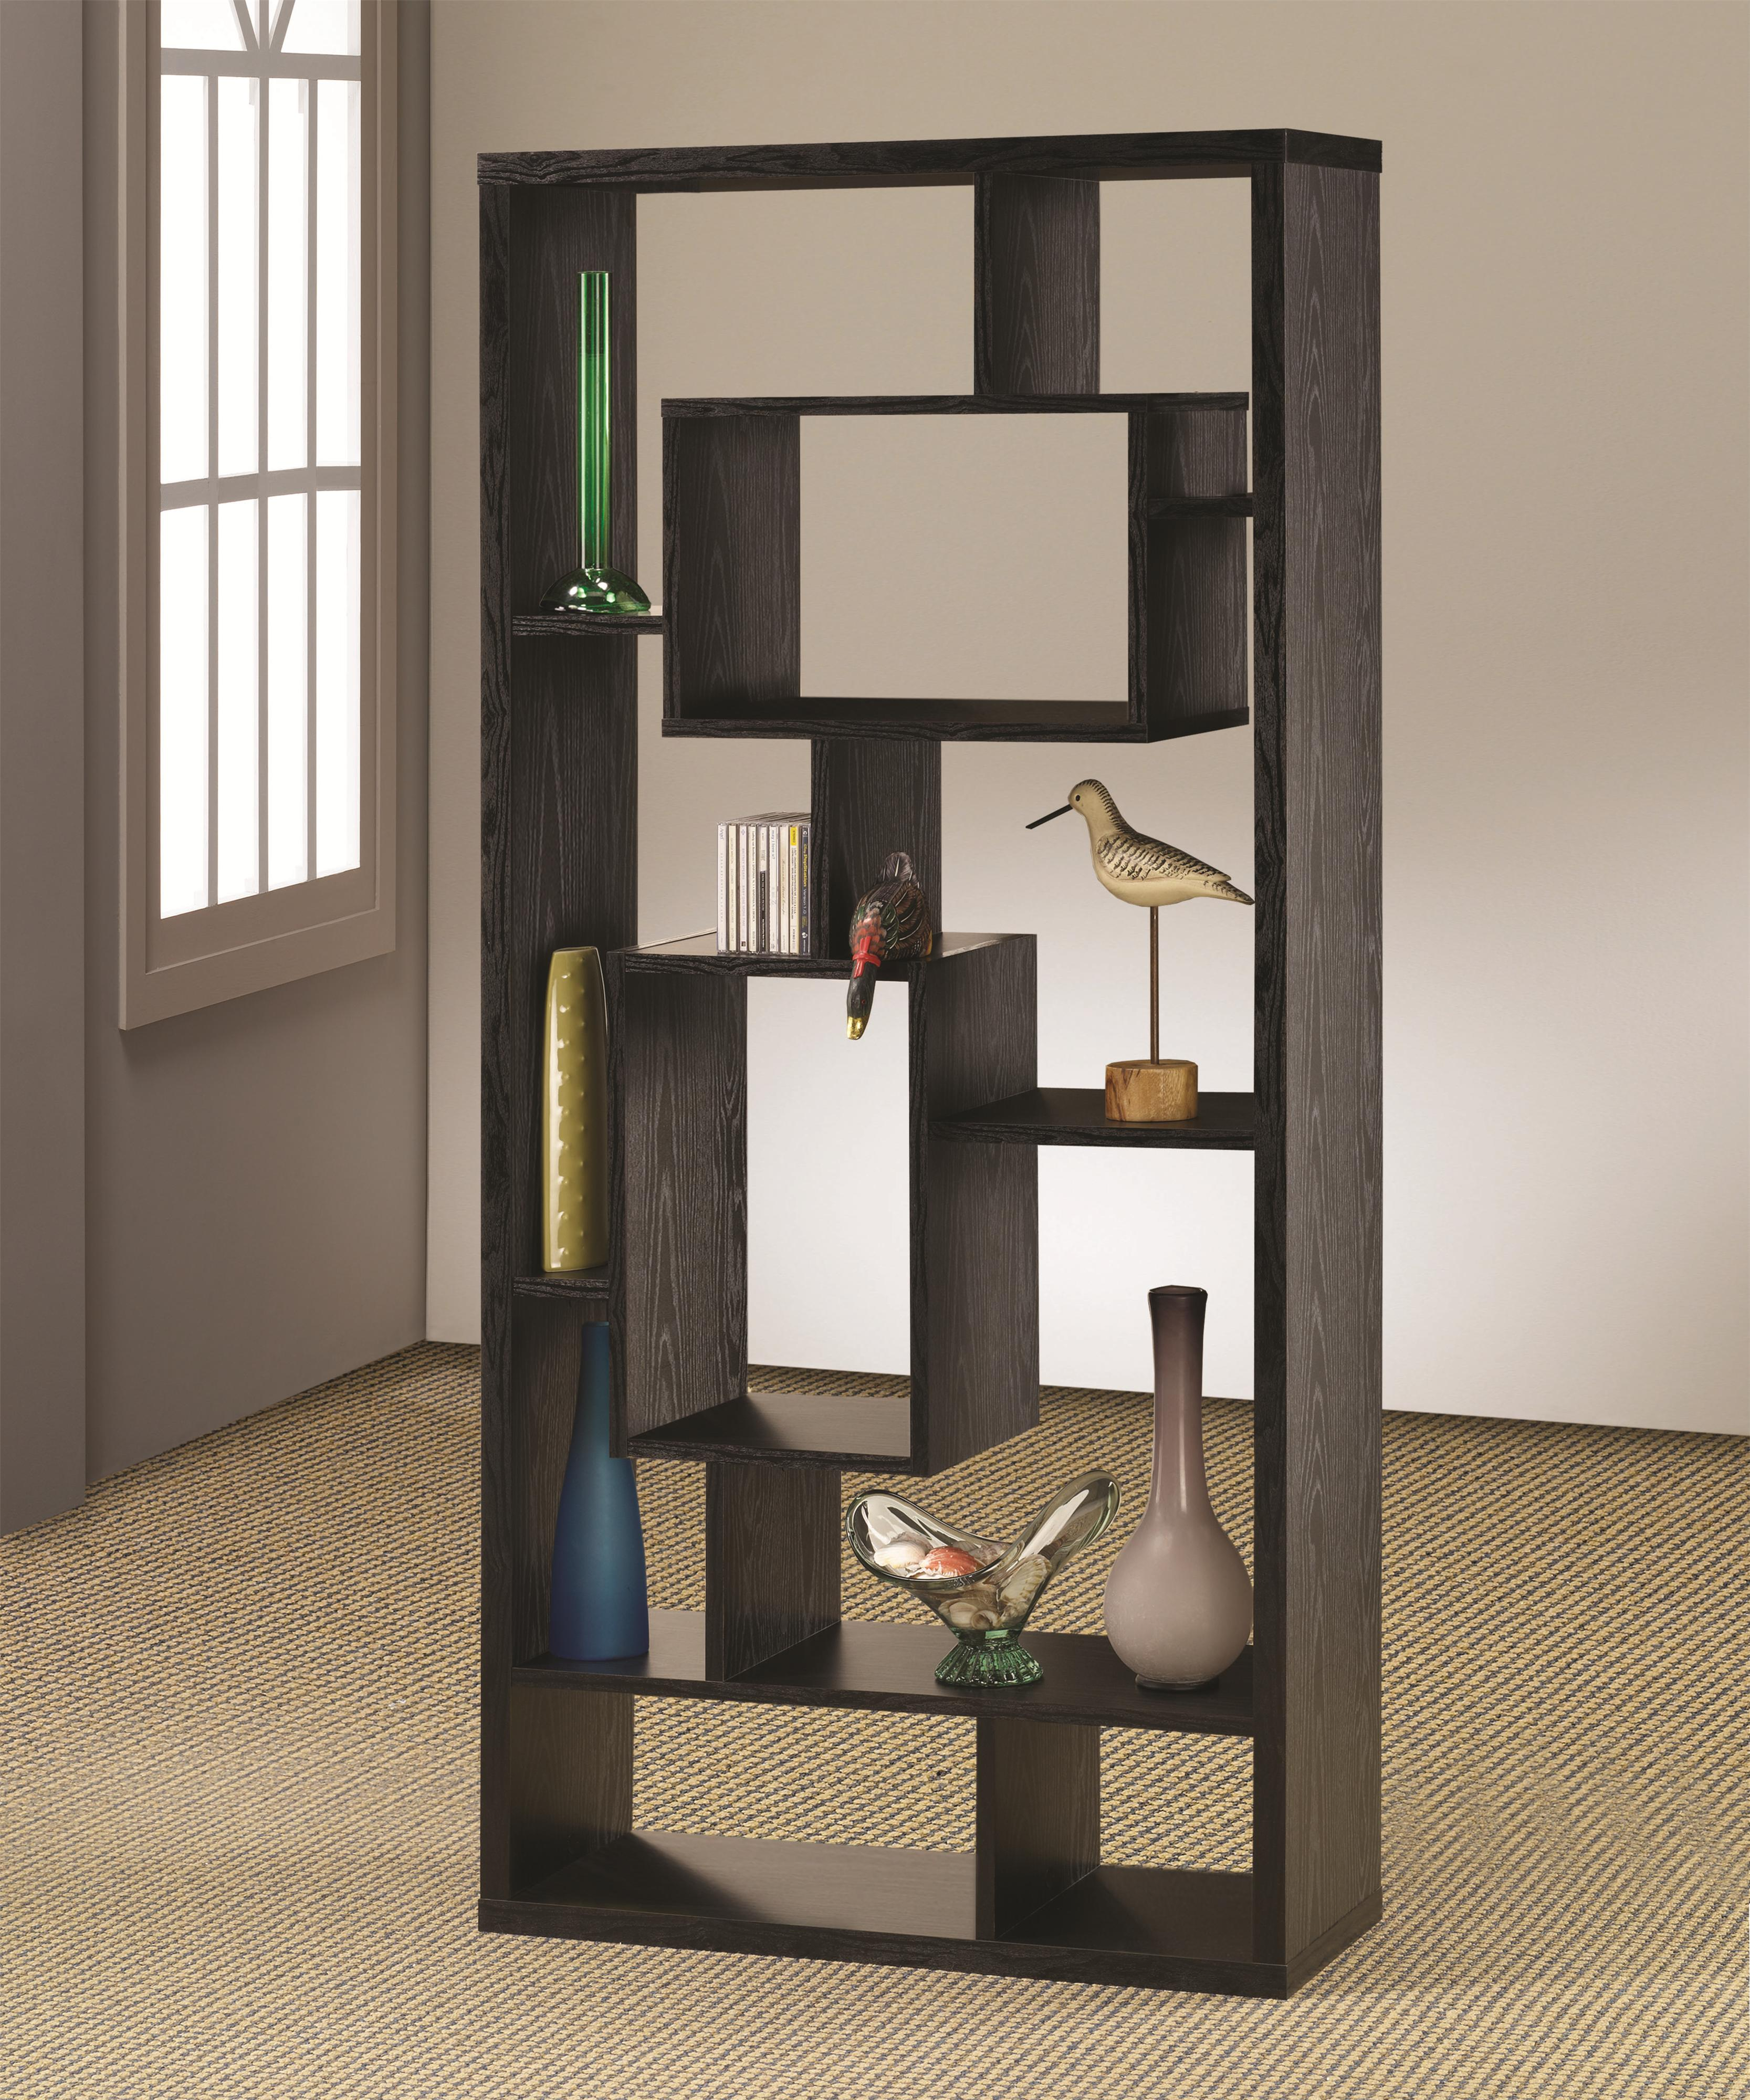 Backless Bookshelves Bookcases Asymmetrical Cube Book Case with Shelves by Coaster